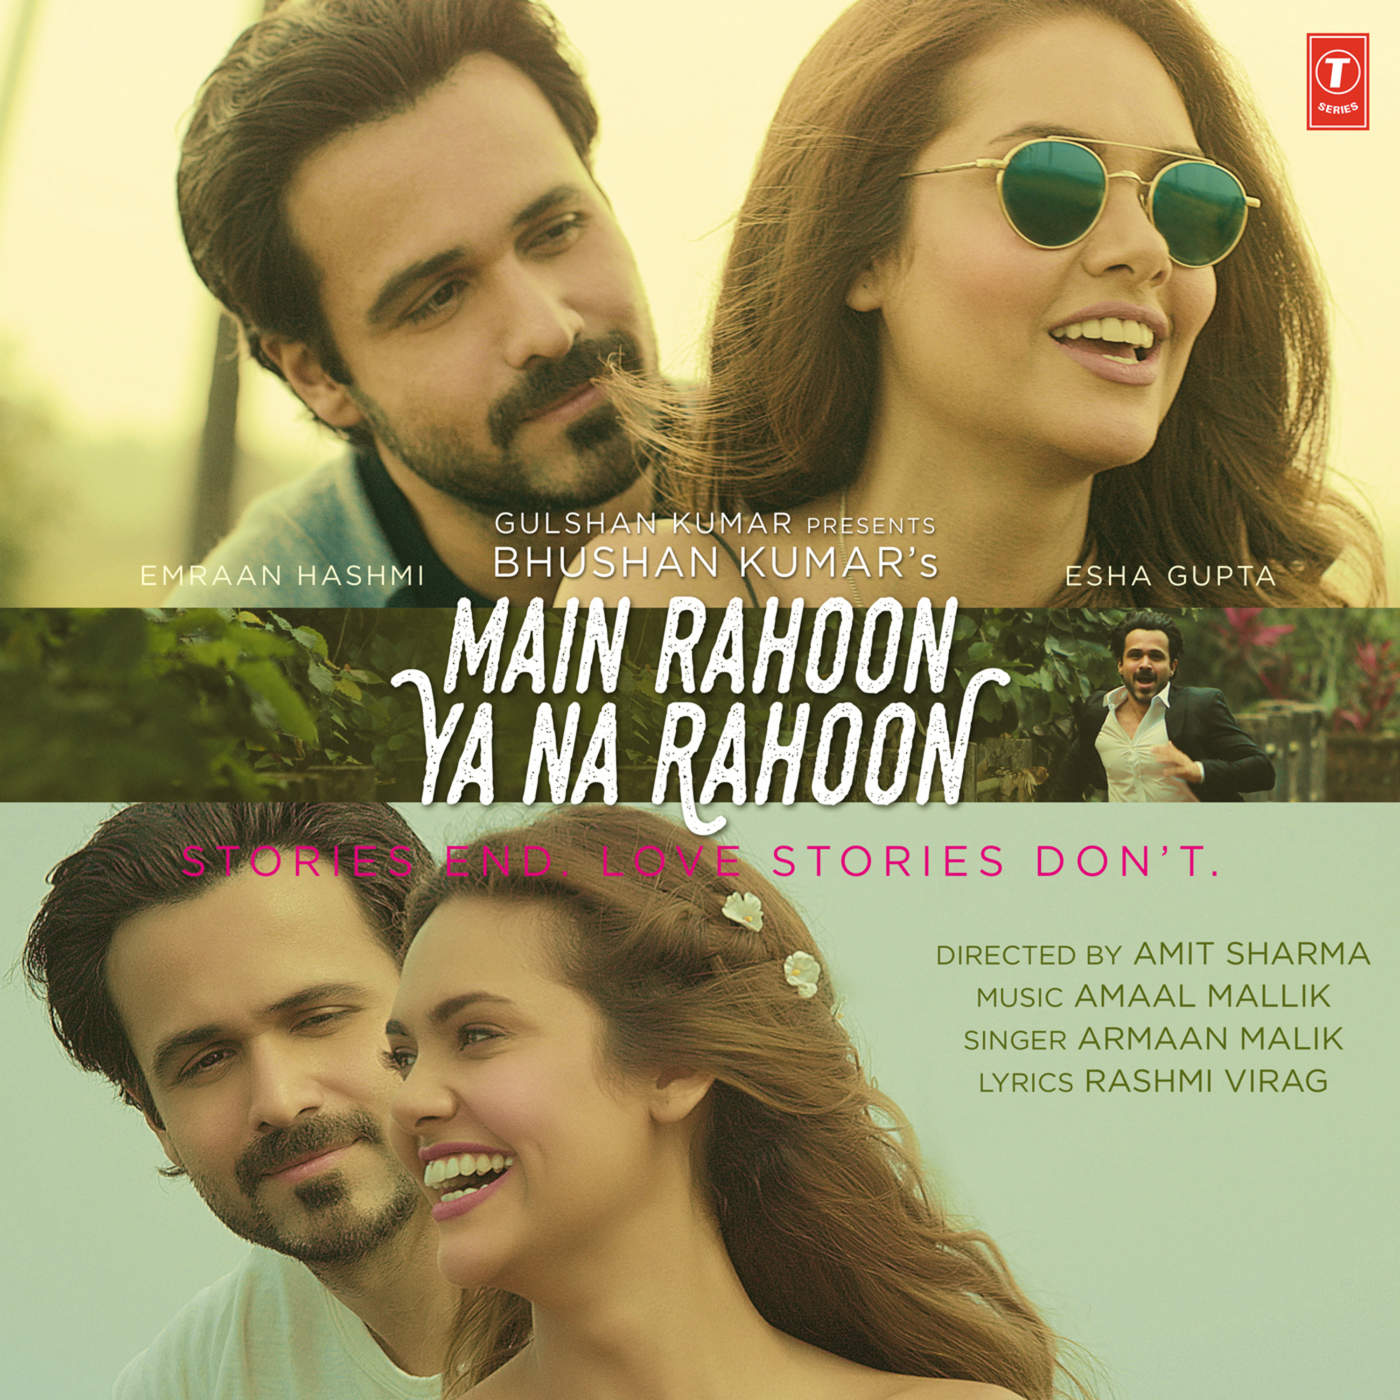 Lovely Song Main Rahoon Ya Na Rahoon Video Ft. Emraan Hashmi & Esha Gupta